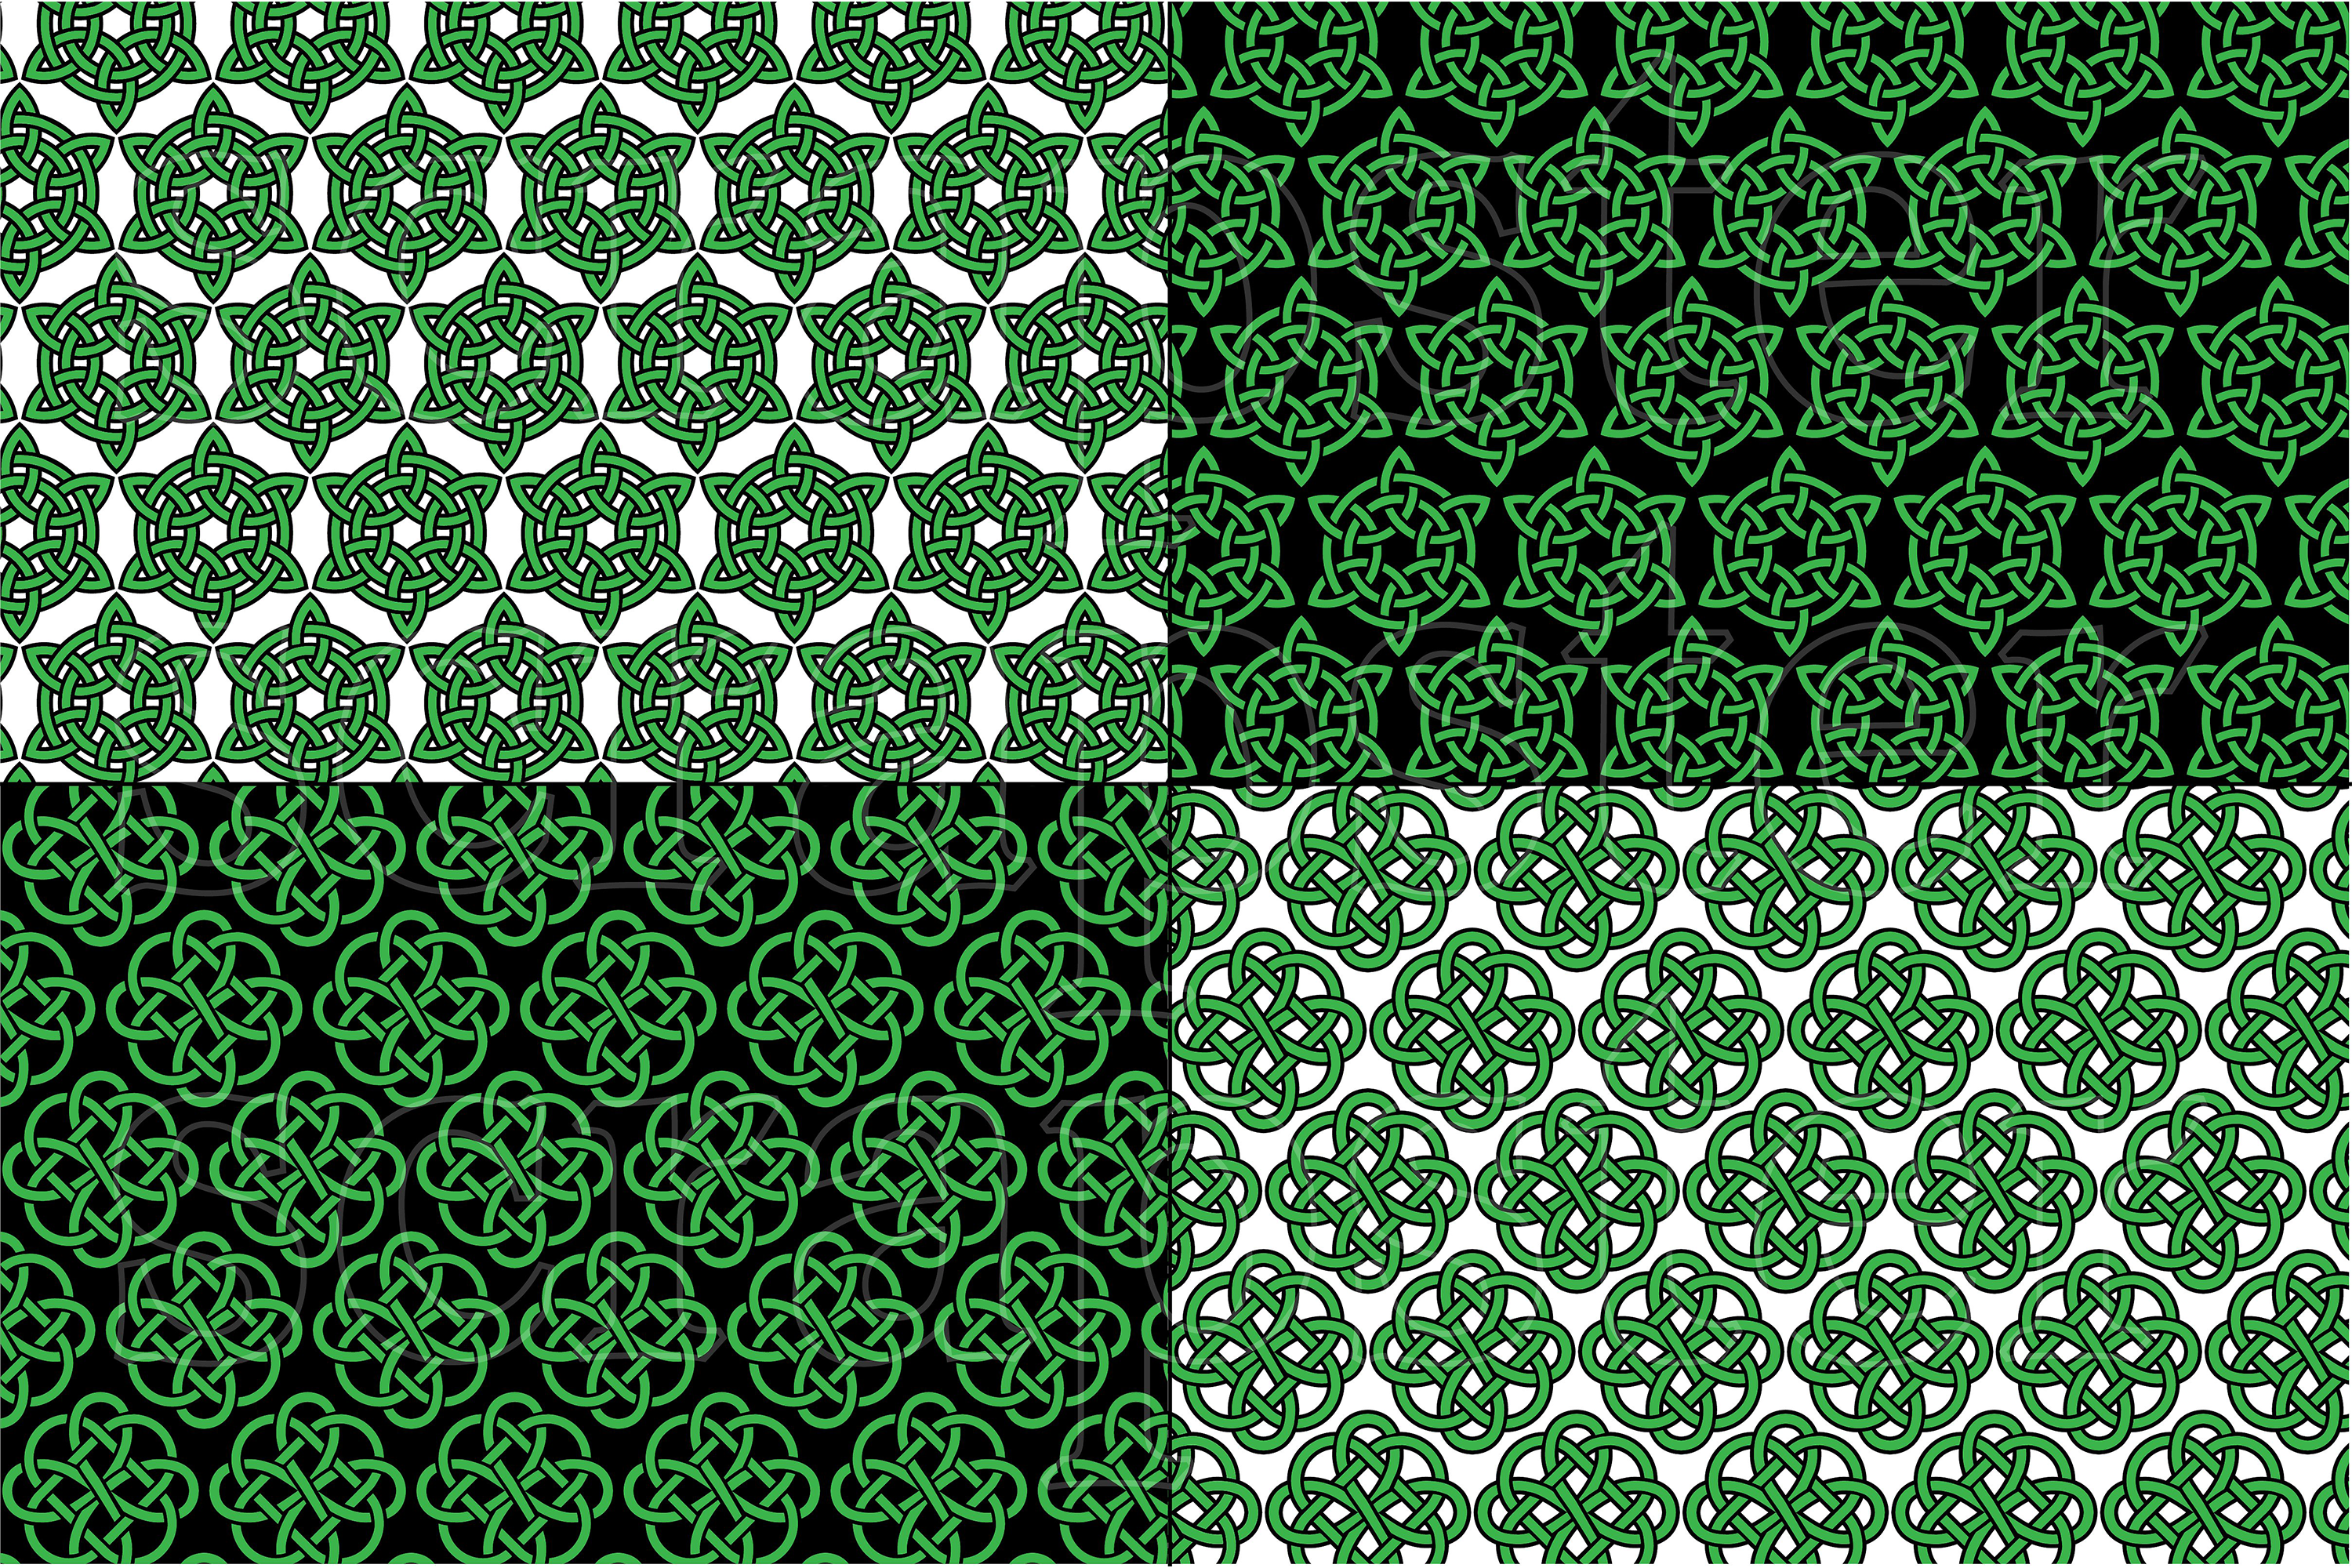 Celtic Knot Patterns example image 2